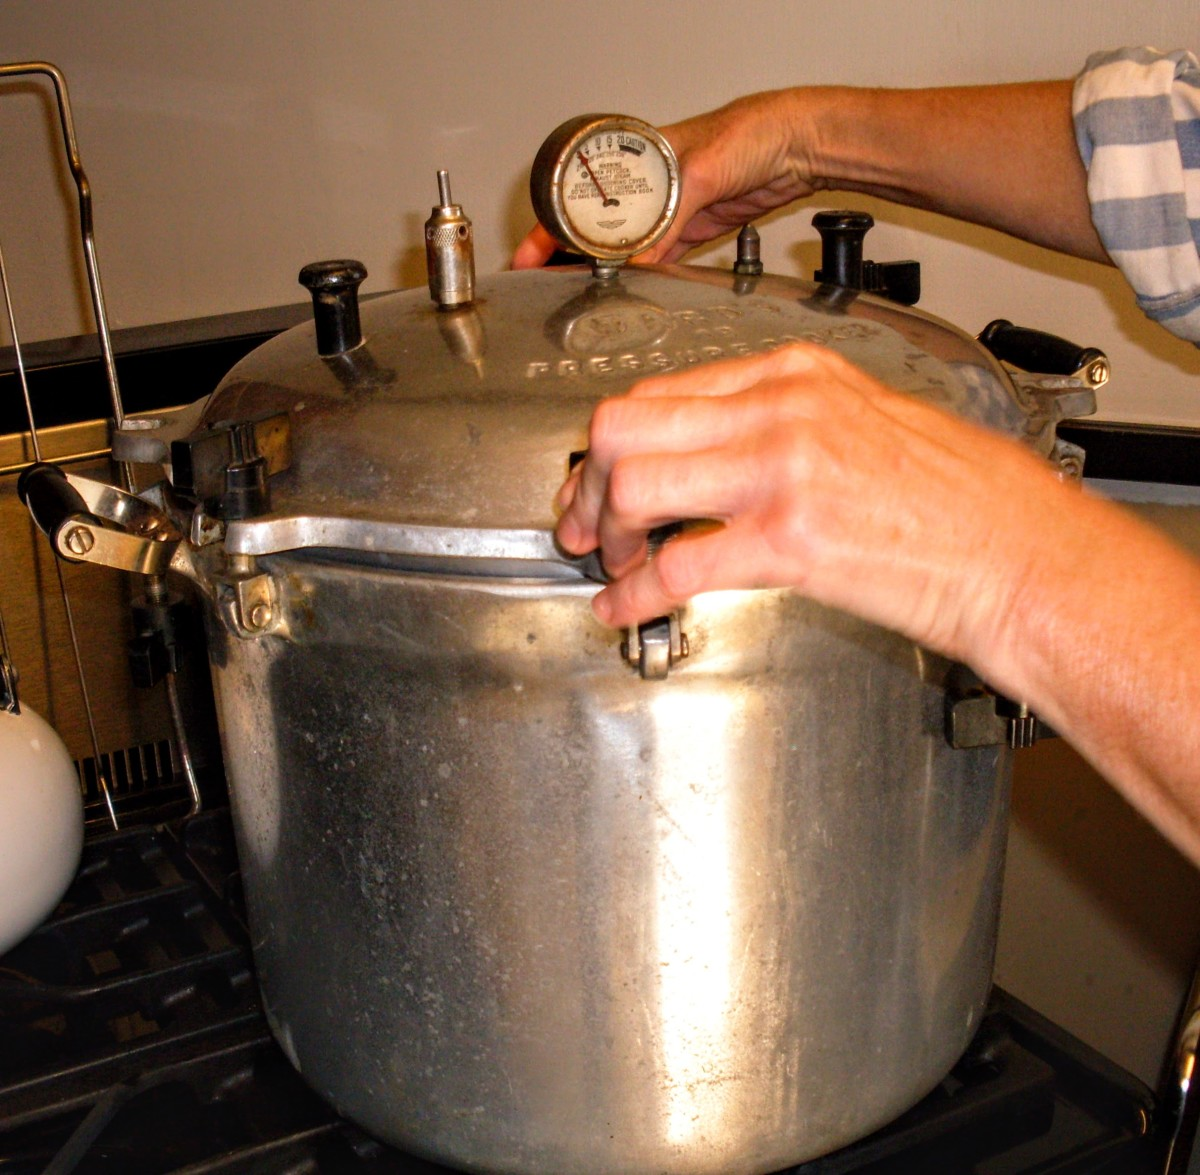 Screw or fasten lid in place. On old-style canners, screw knobs down tightly in opposites, to achieve an even seal.